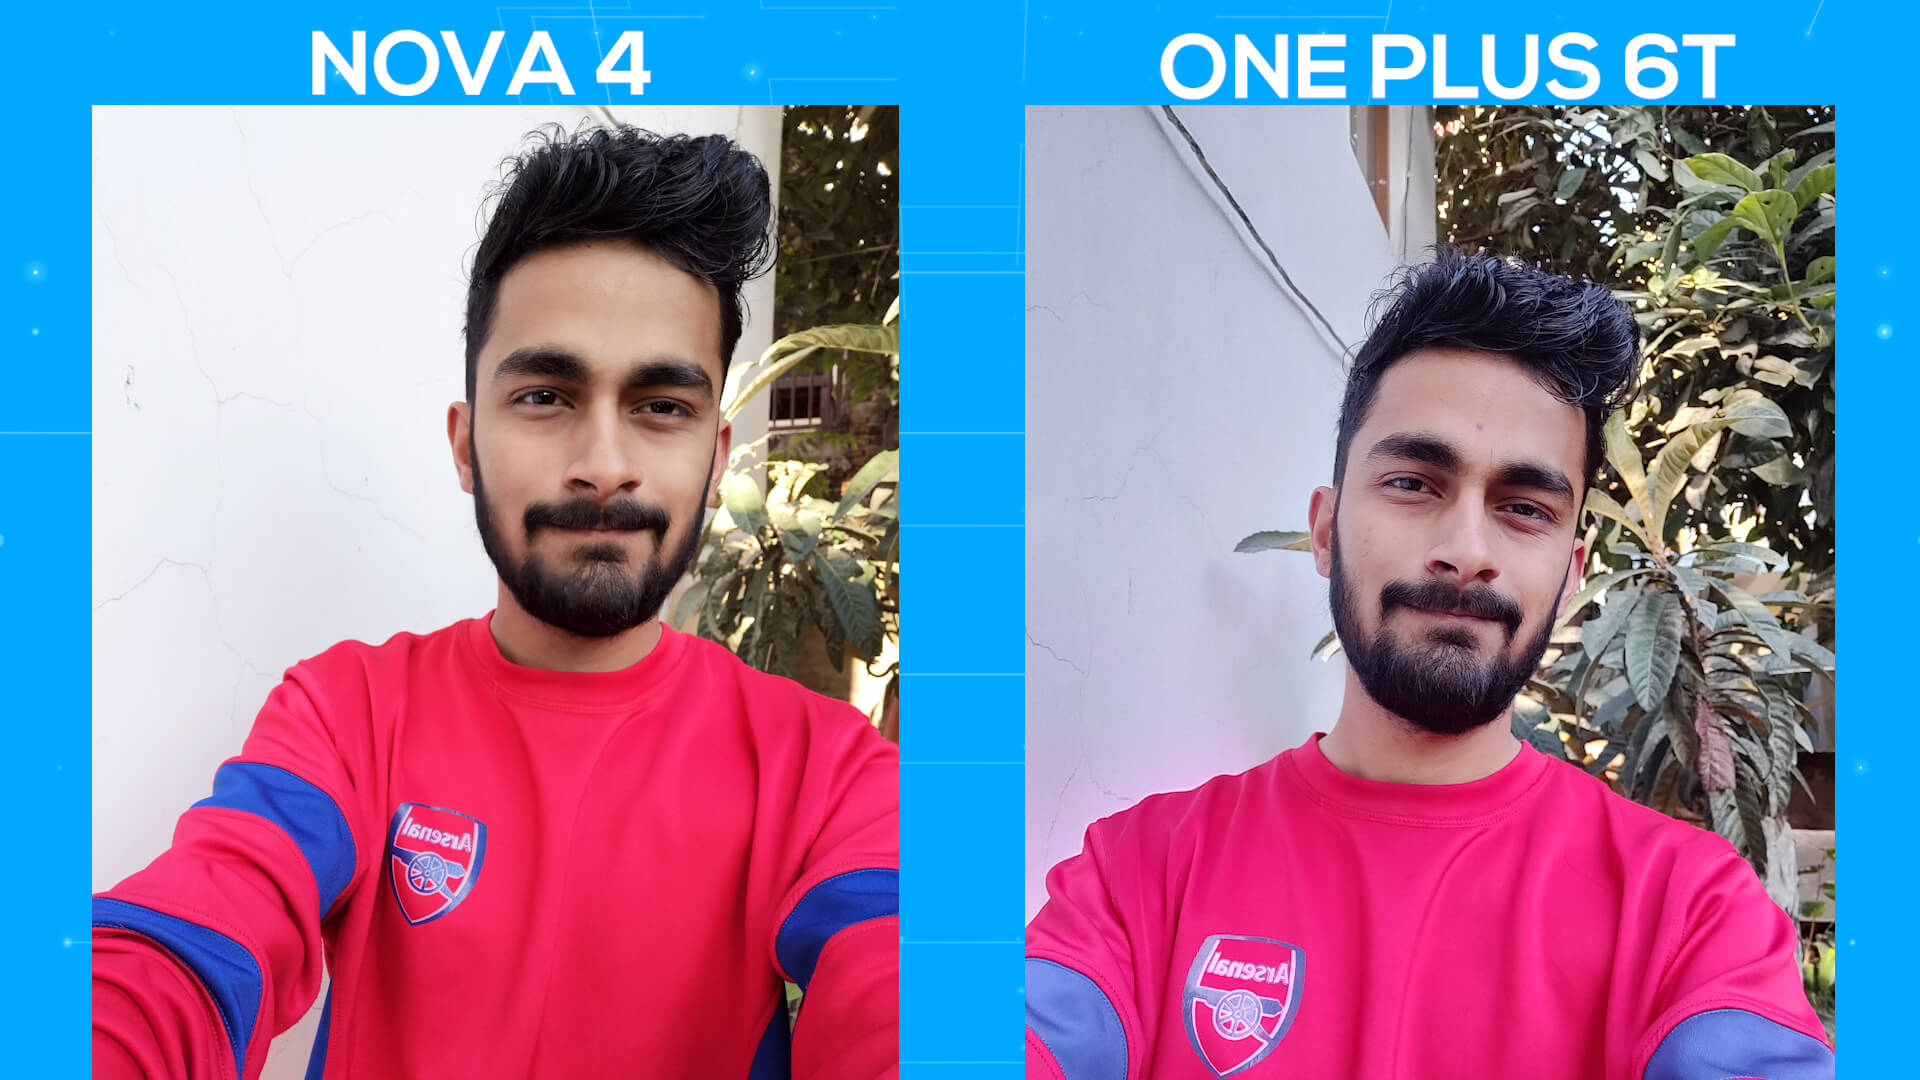 Huawei Nova 4 vs OnePlus 6T camera comparison selfie